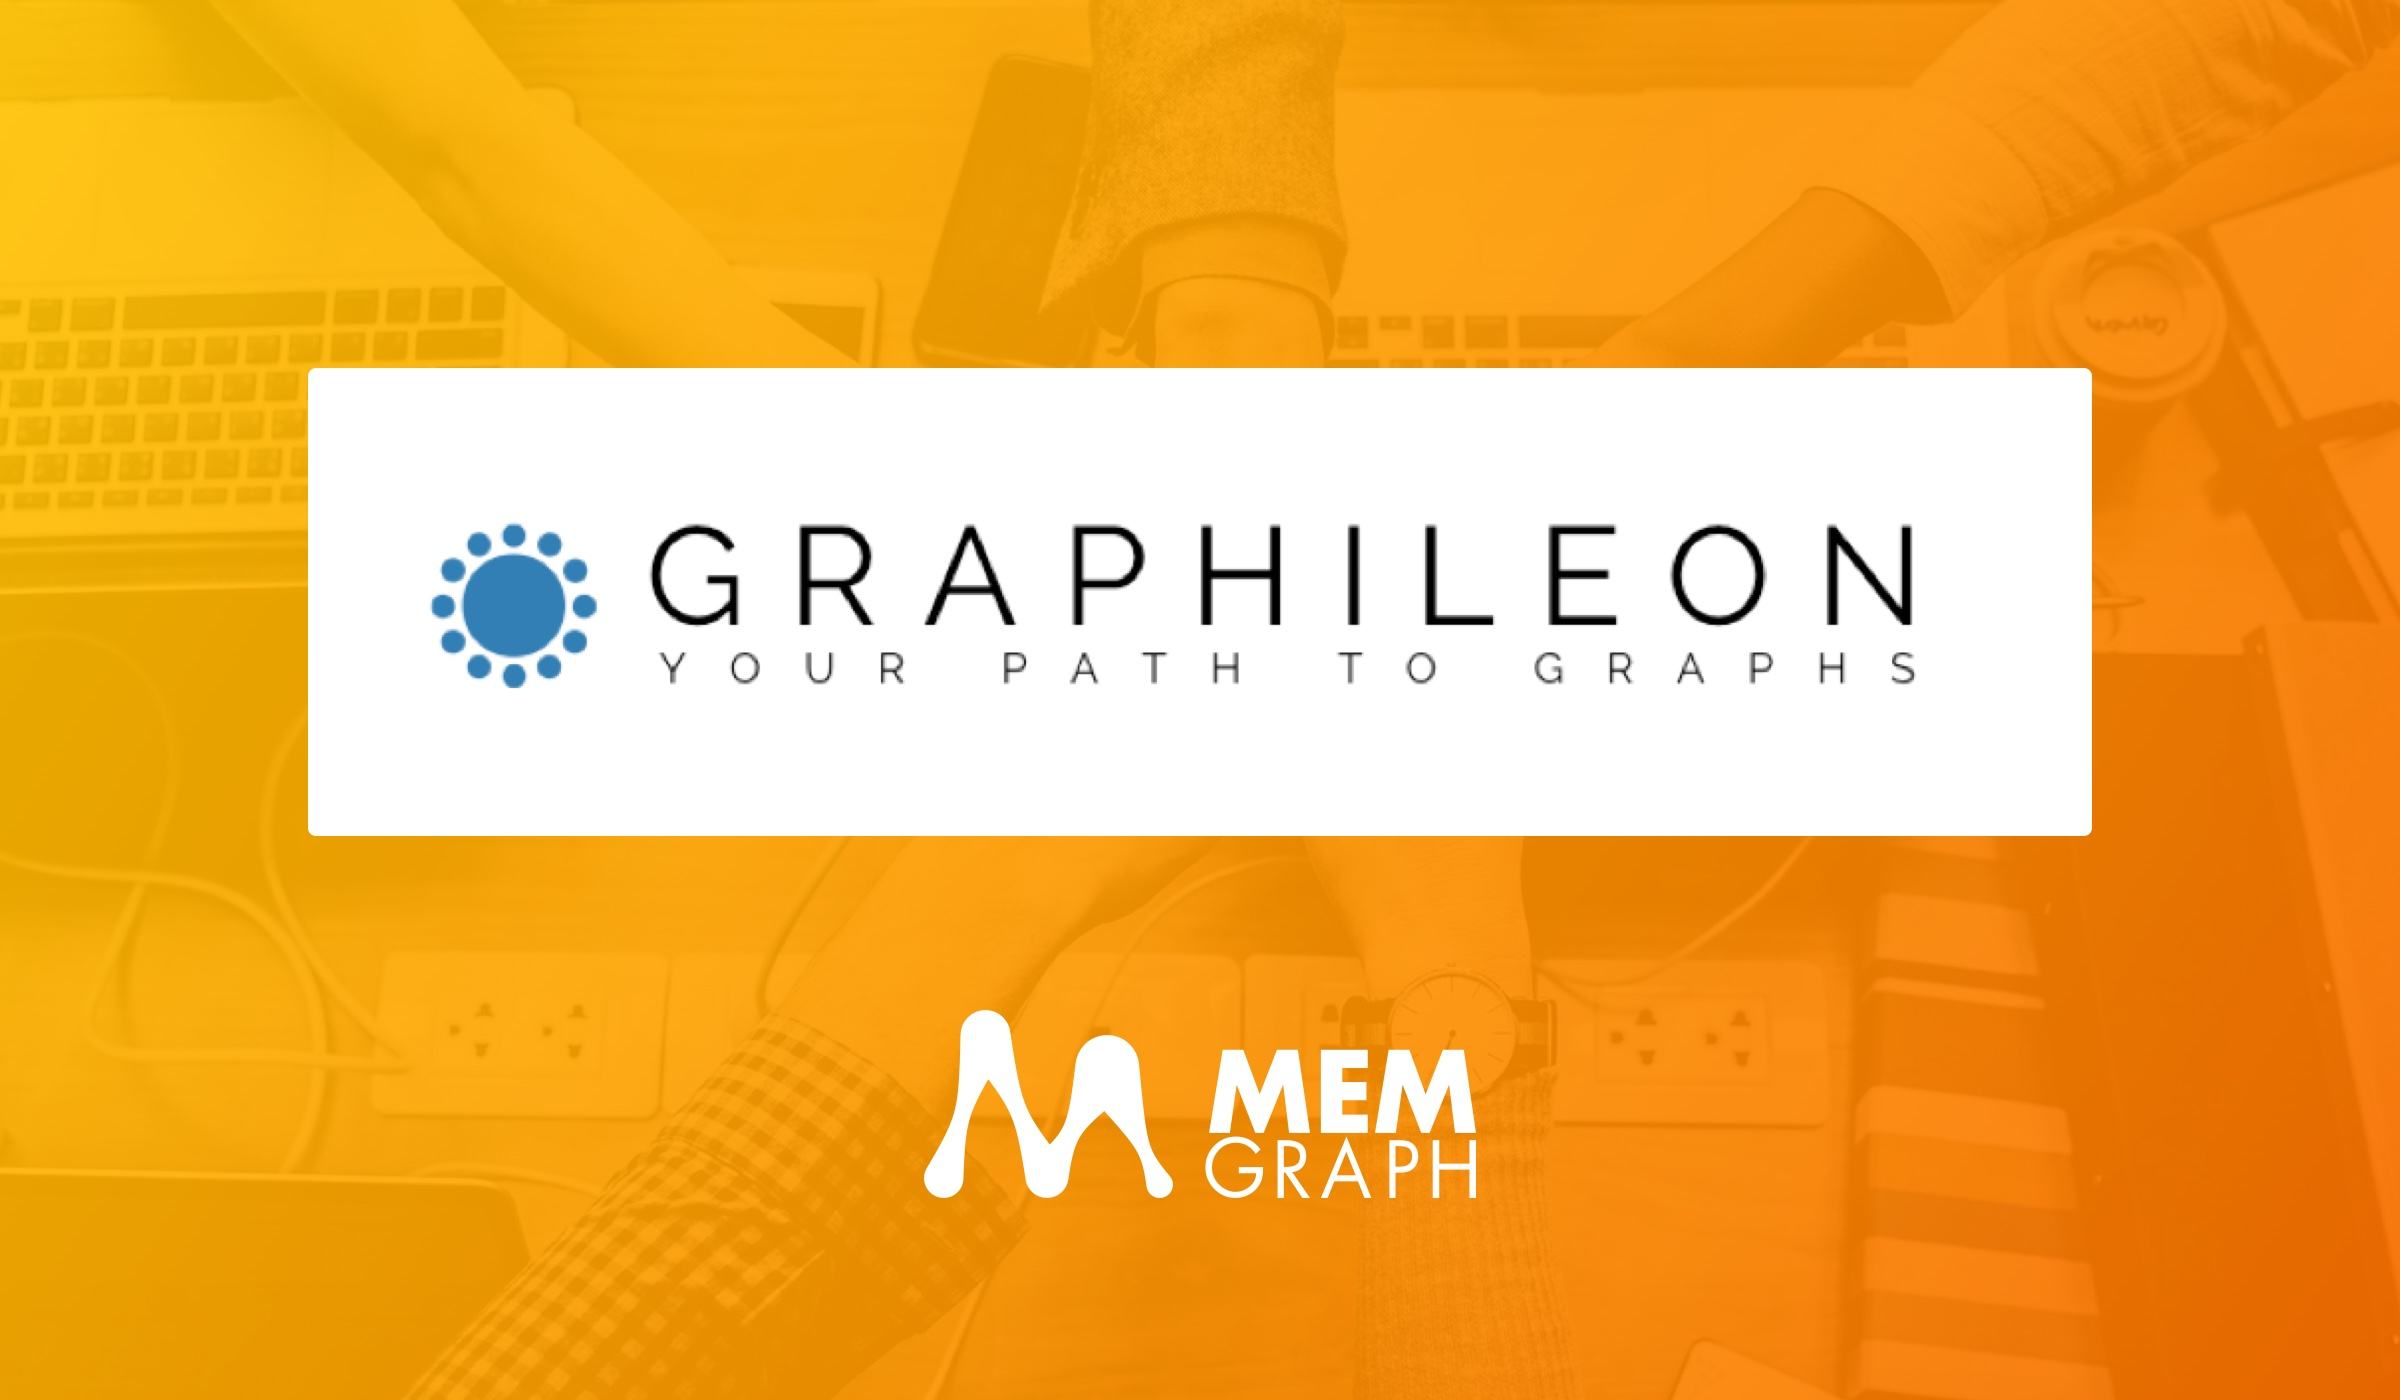 Memgraph and Graphileon Partner to Offer Enterprises a Seamless Path to Graphs